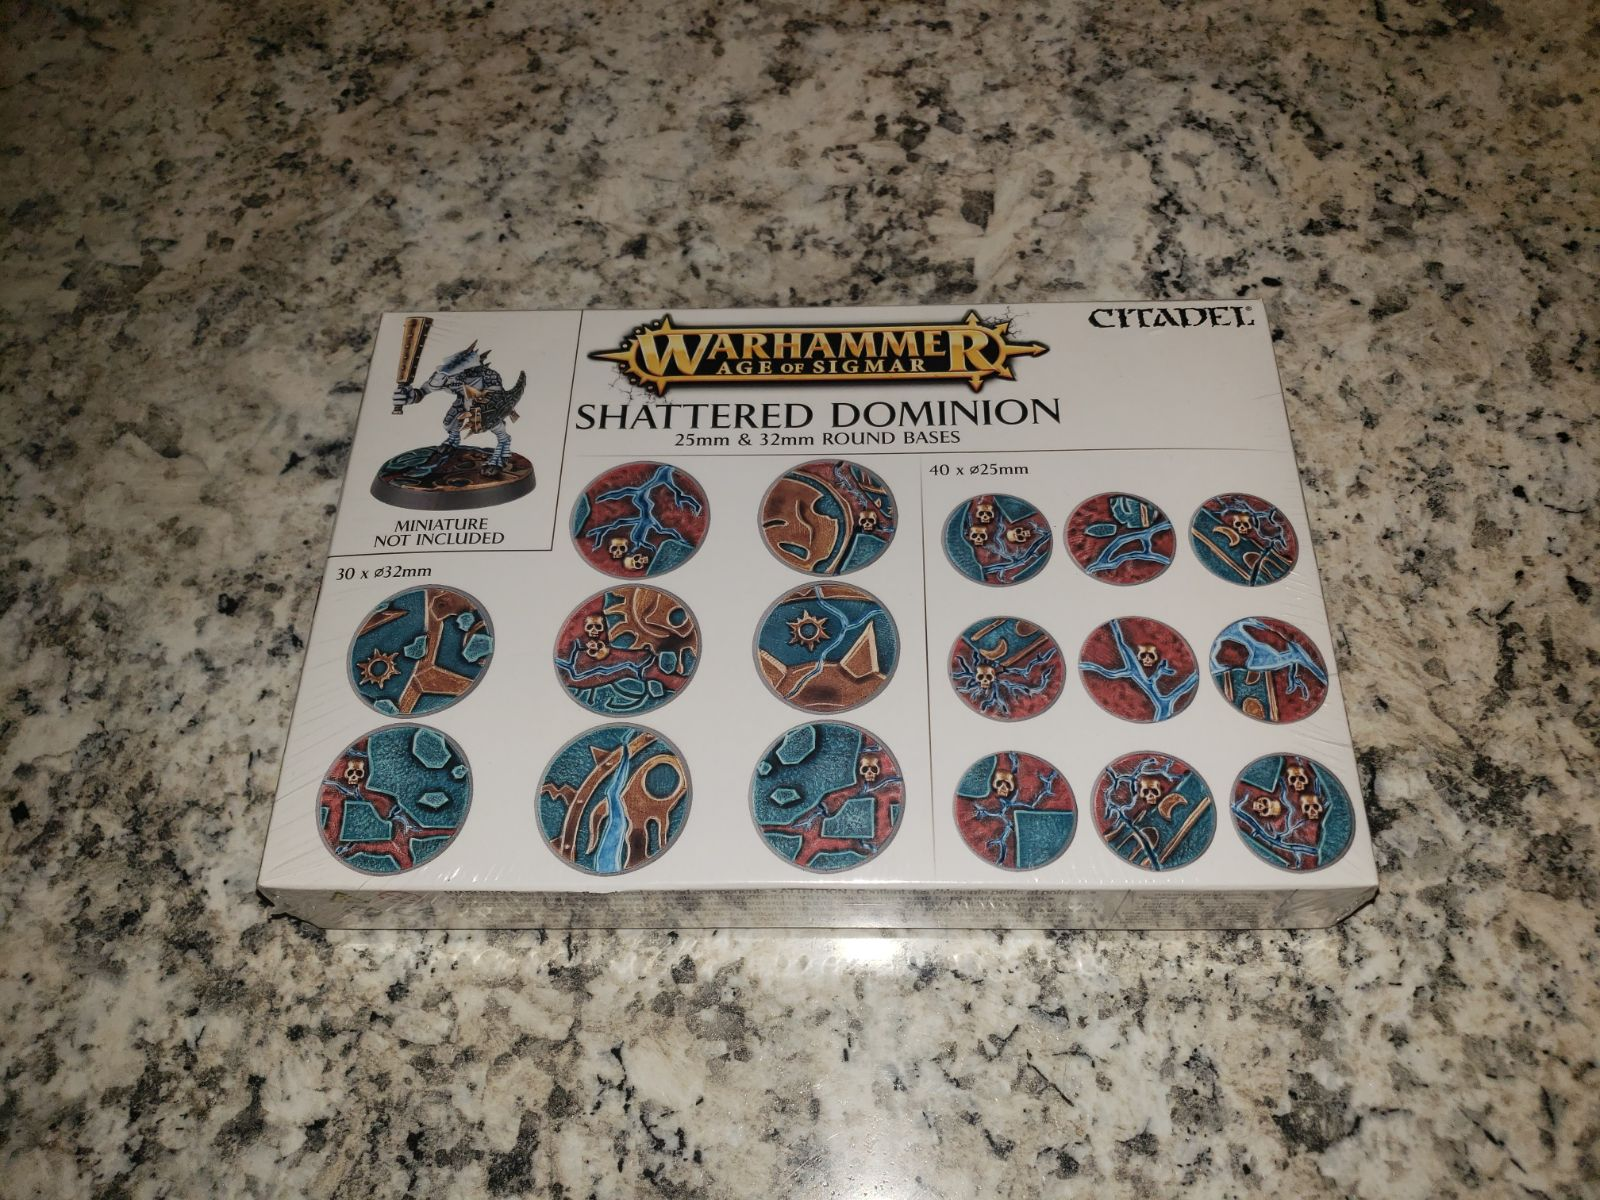 Warhammer age of sigmar, bases, NEW